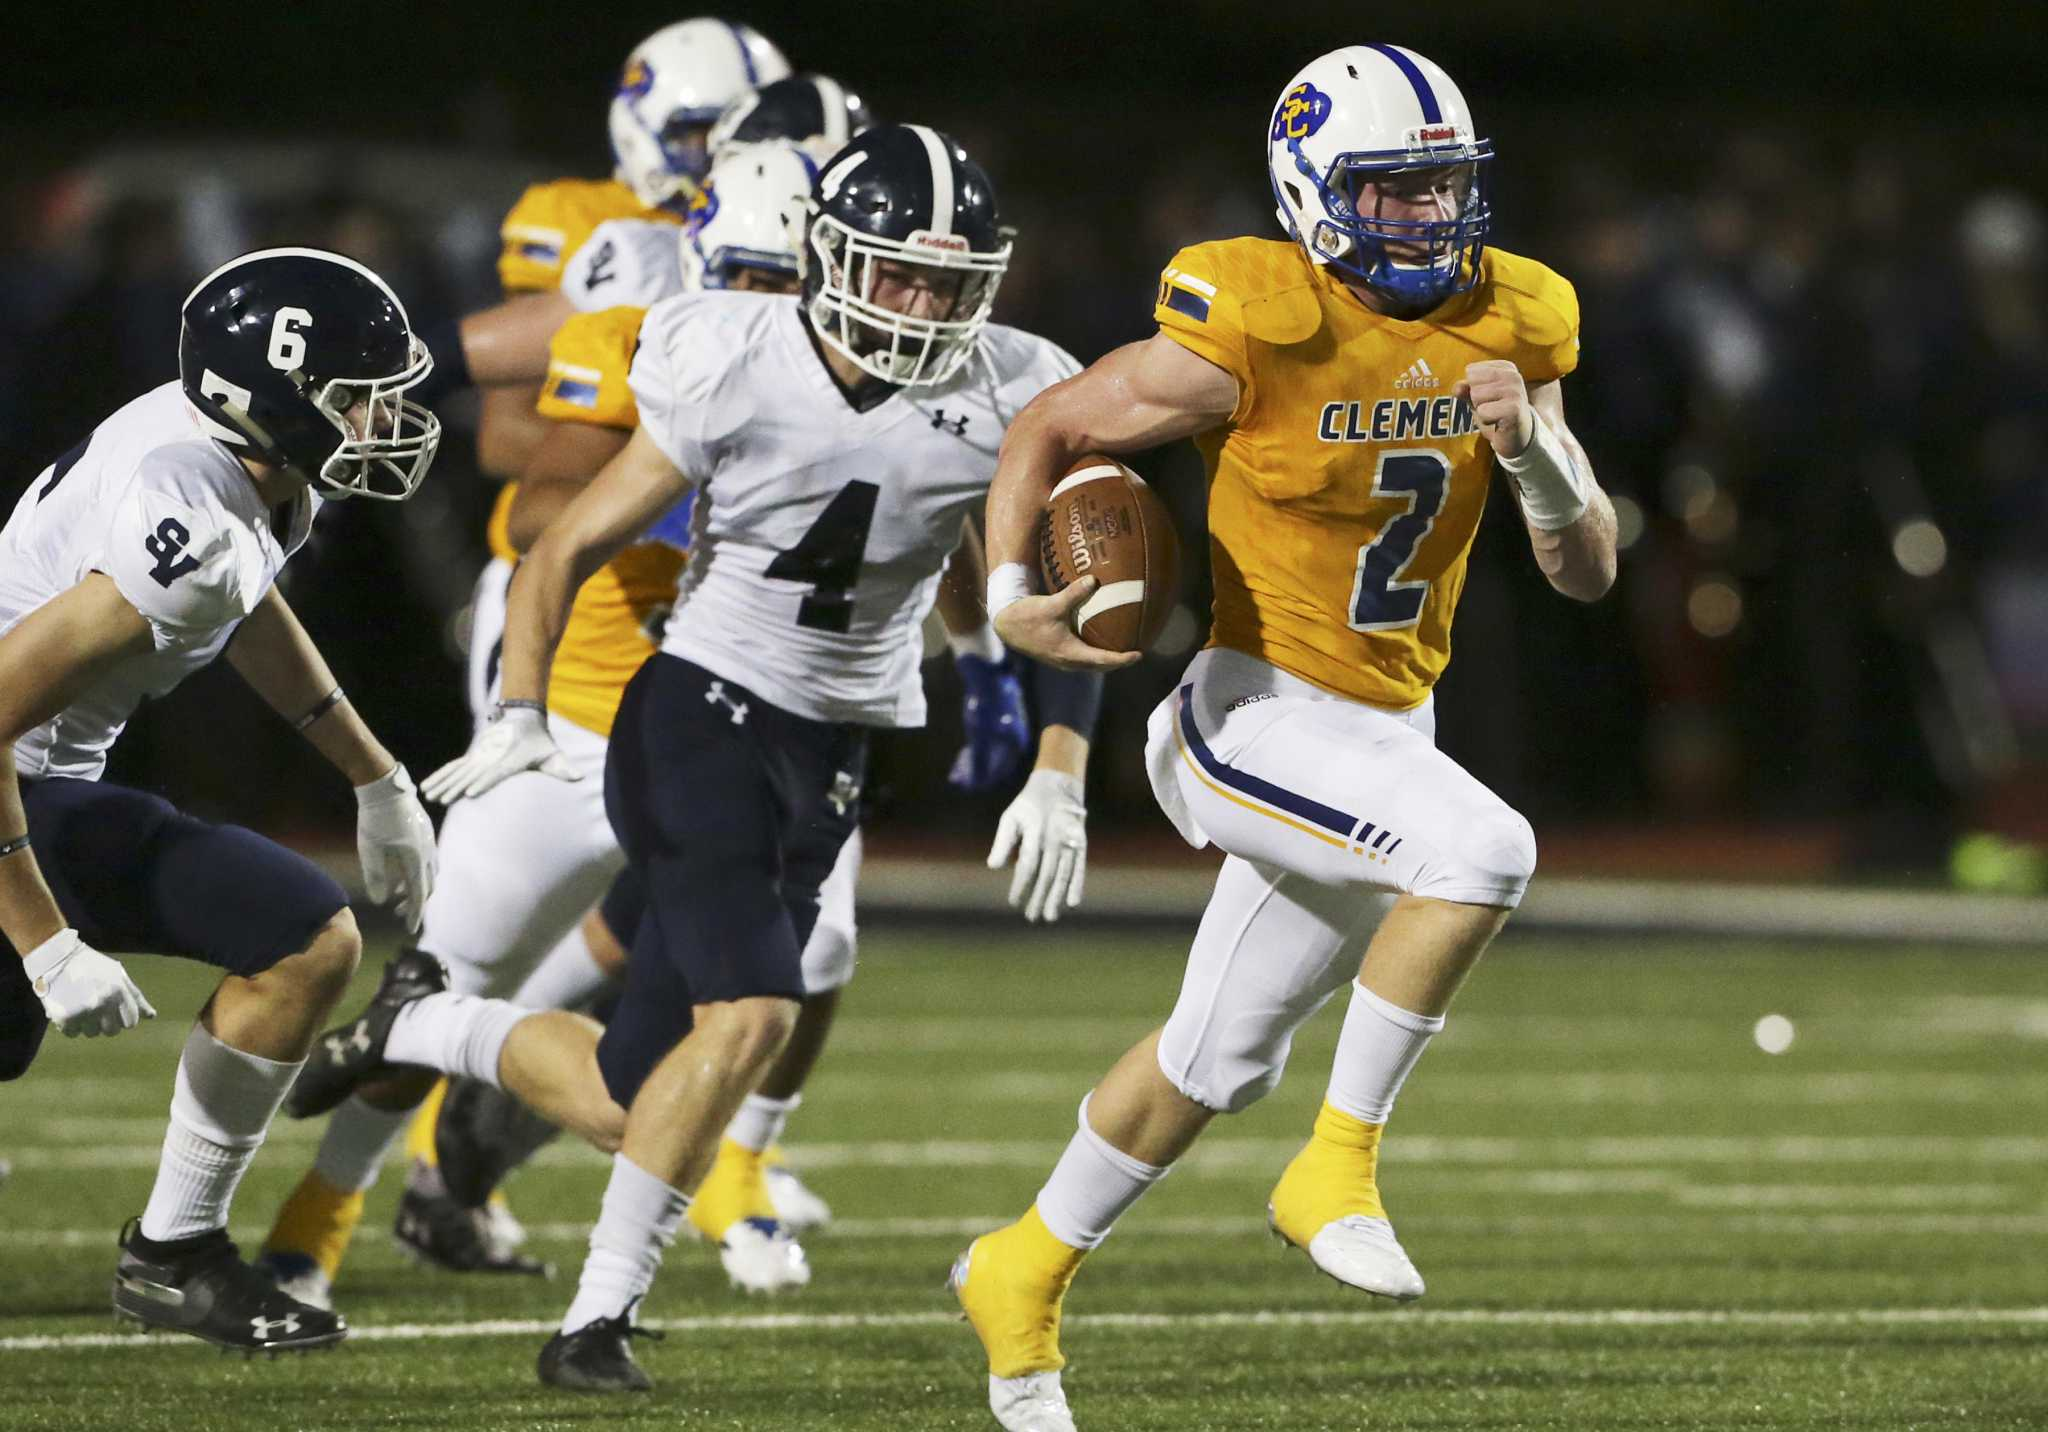 HS Football: E-N Area Week 4 scouting report